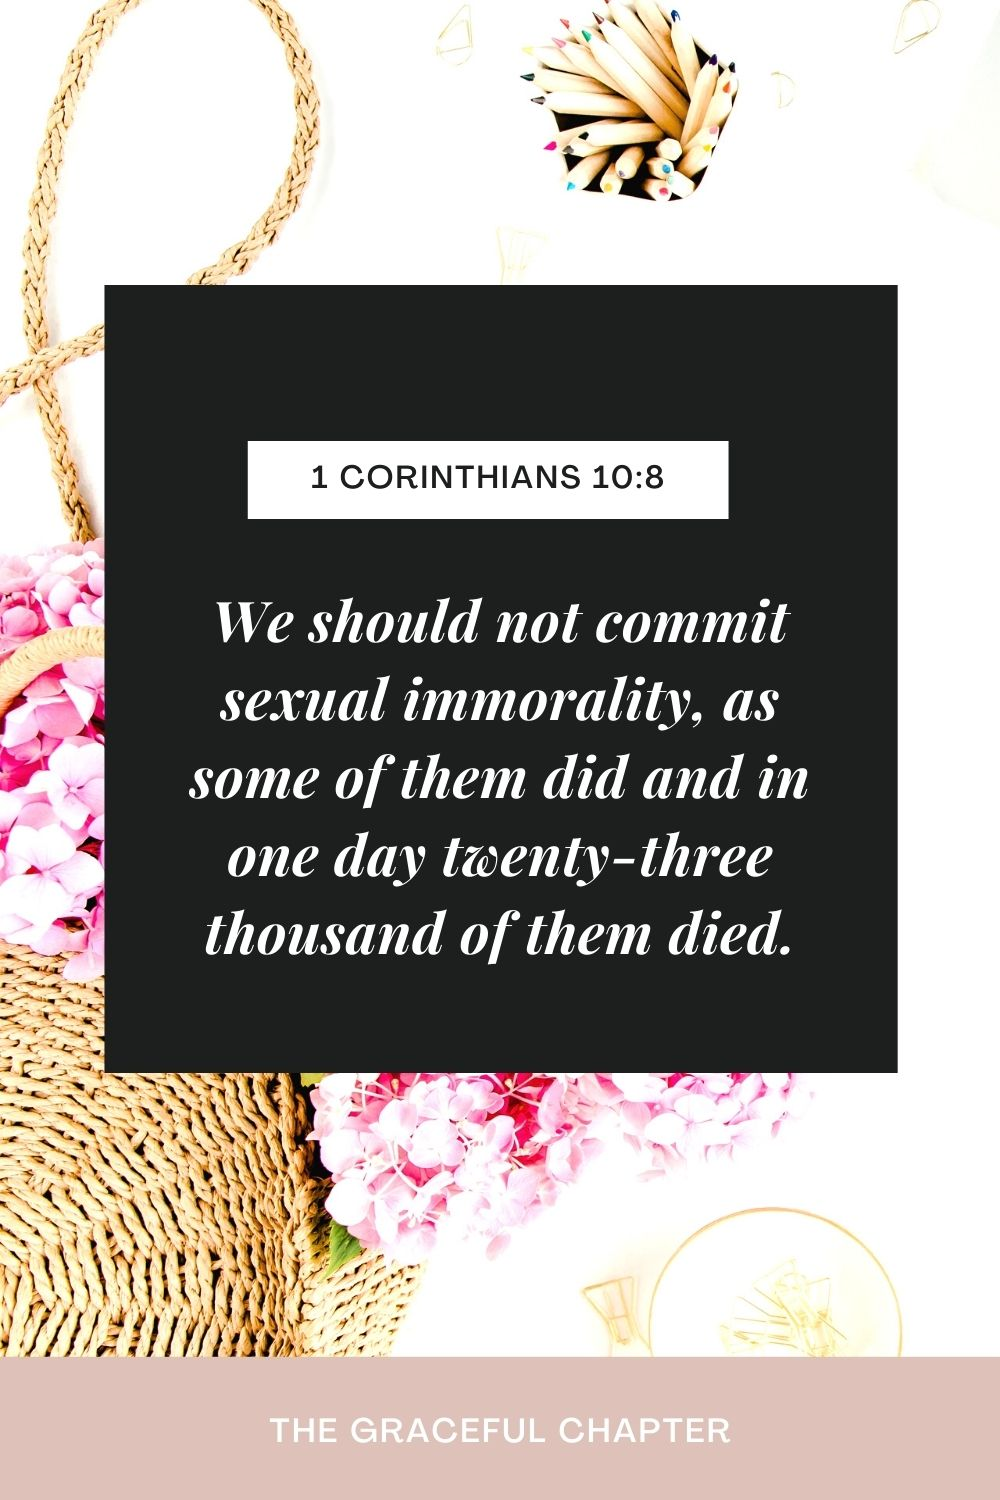 We should not commit sexual immorality, as some of them did and in one day twenty-three thousand of them died. 1 Corinthians 10:8